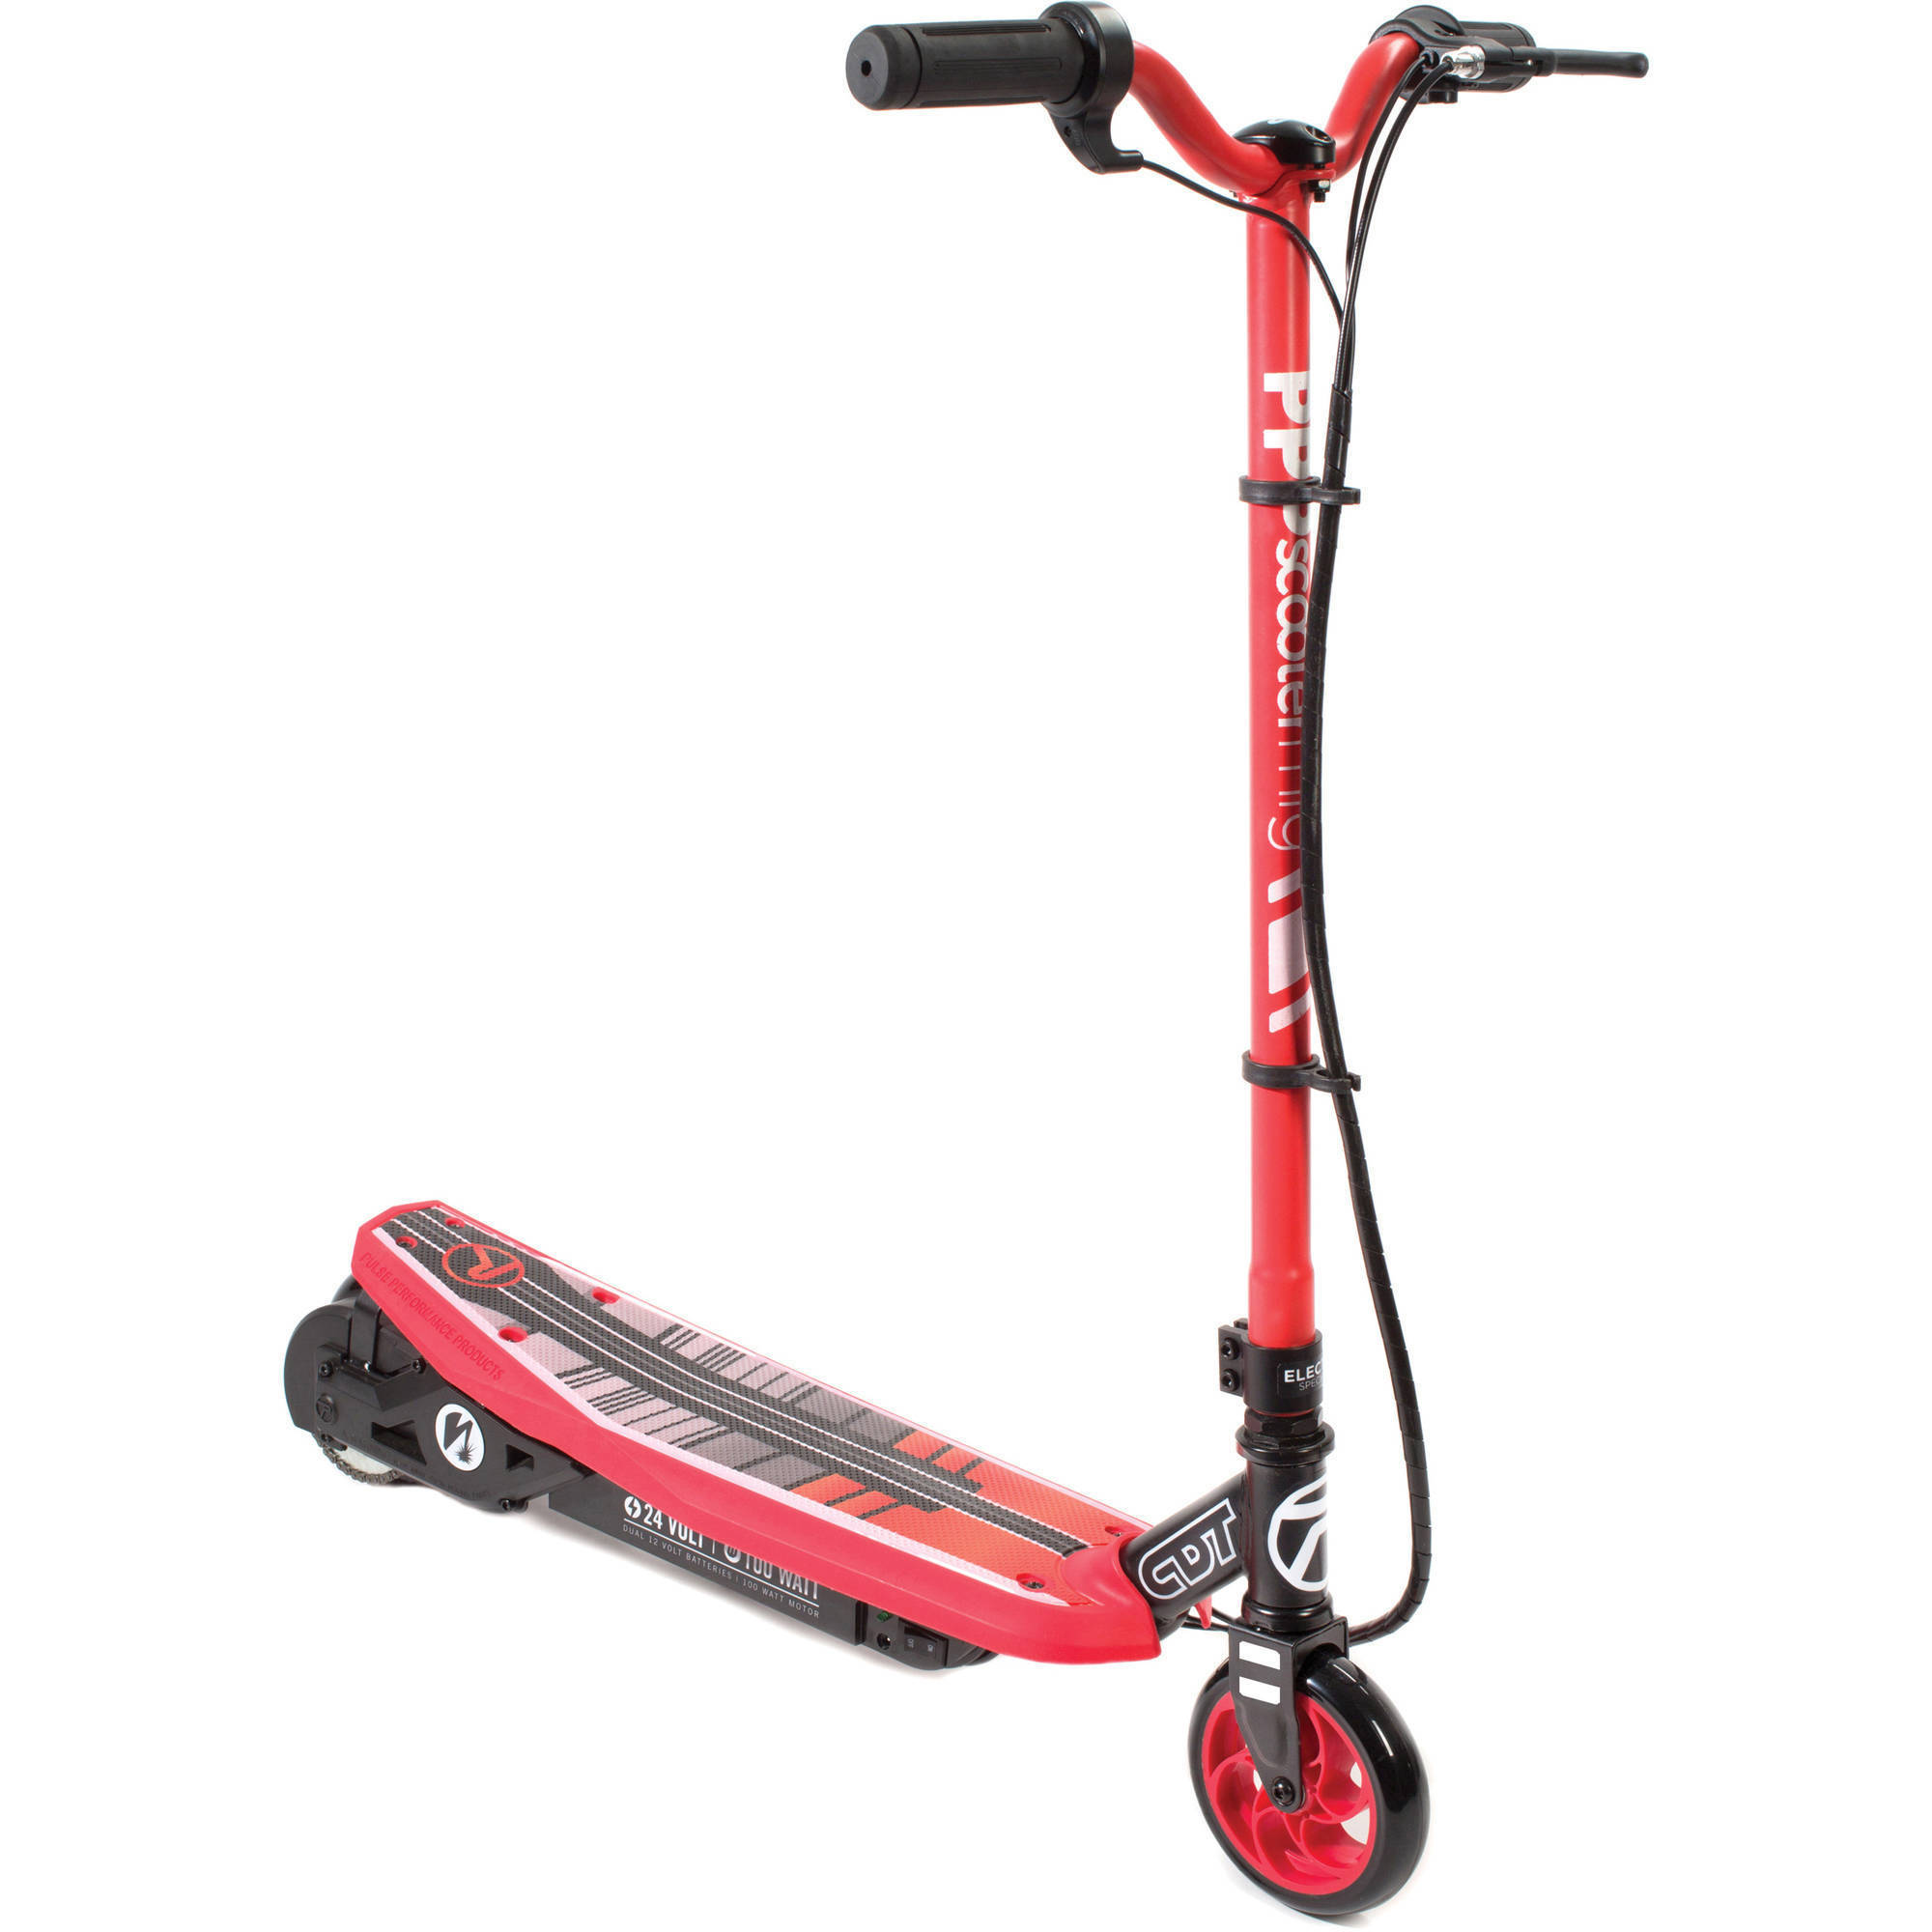 Pulse Performance Products Lightning Electric Scooter by Bravo Sports